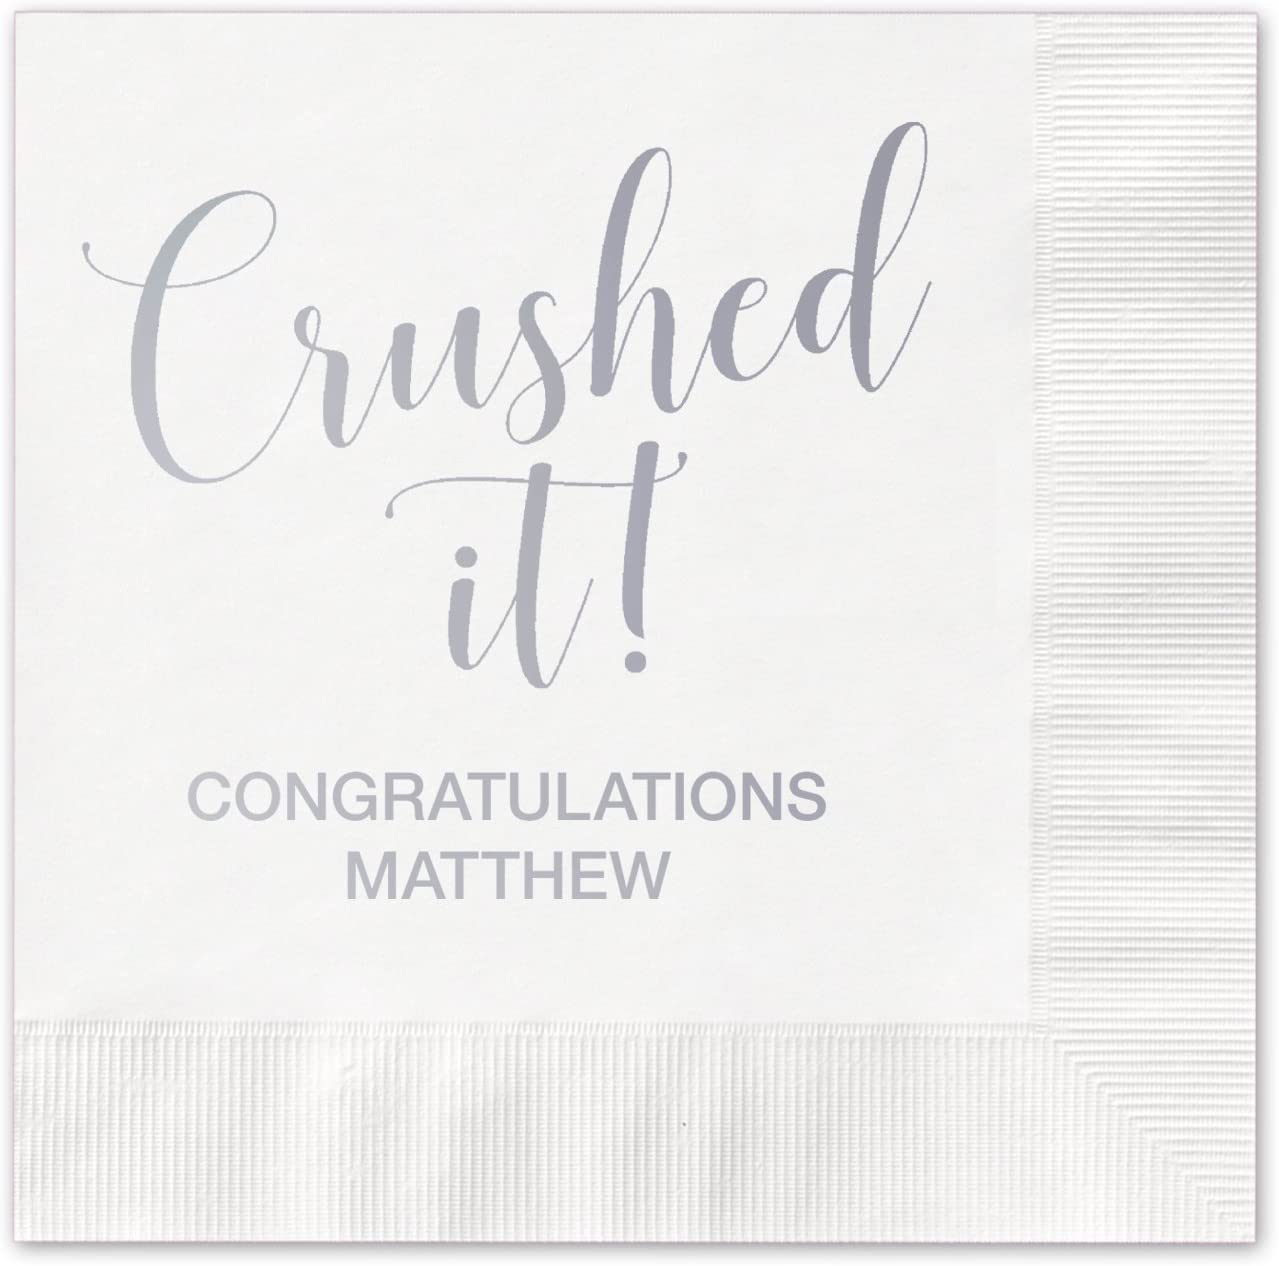 Canopy Street Crushed It Personalized Cocktail Napkins / 100 White Paper Coined Napkins with Choice of Foil/Folded 4 3/4